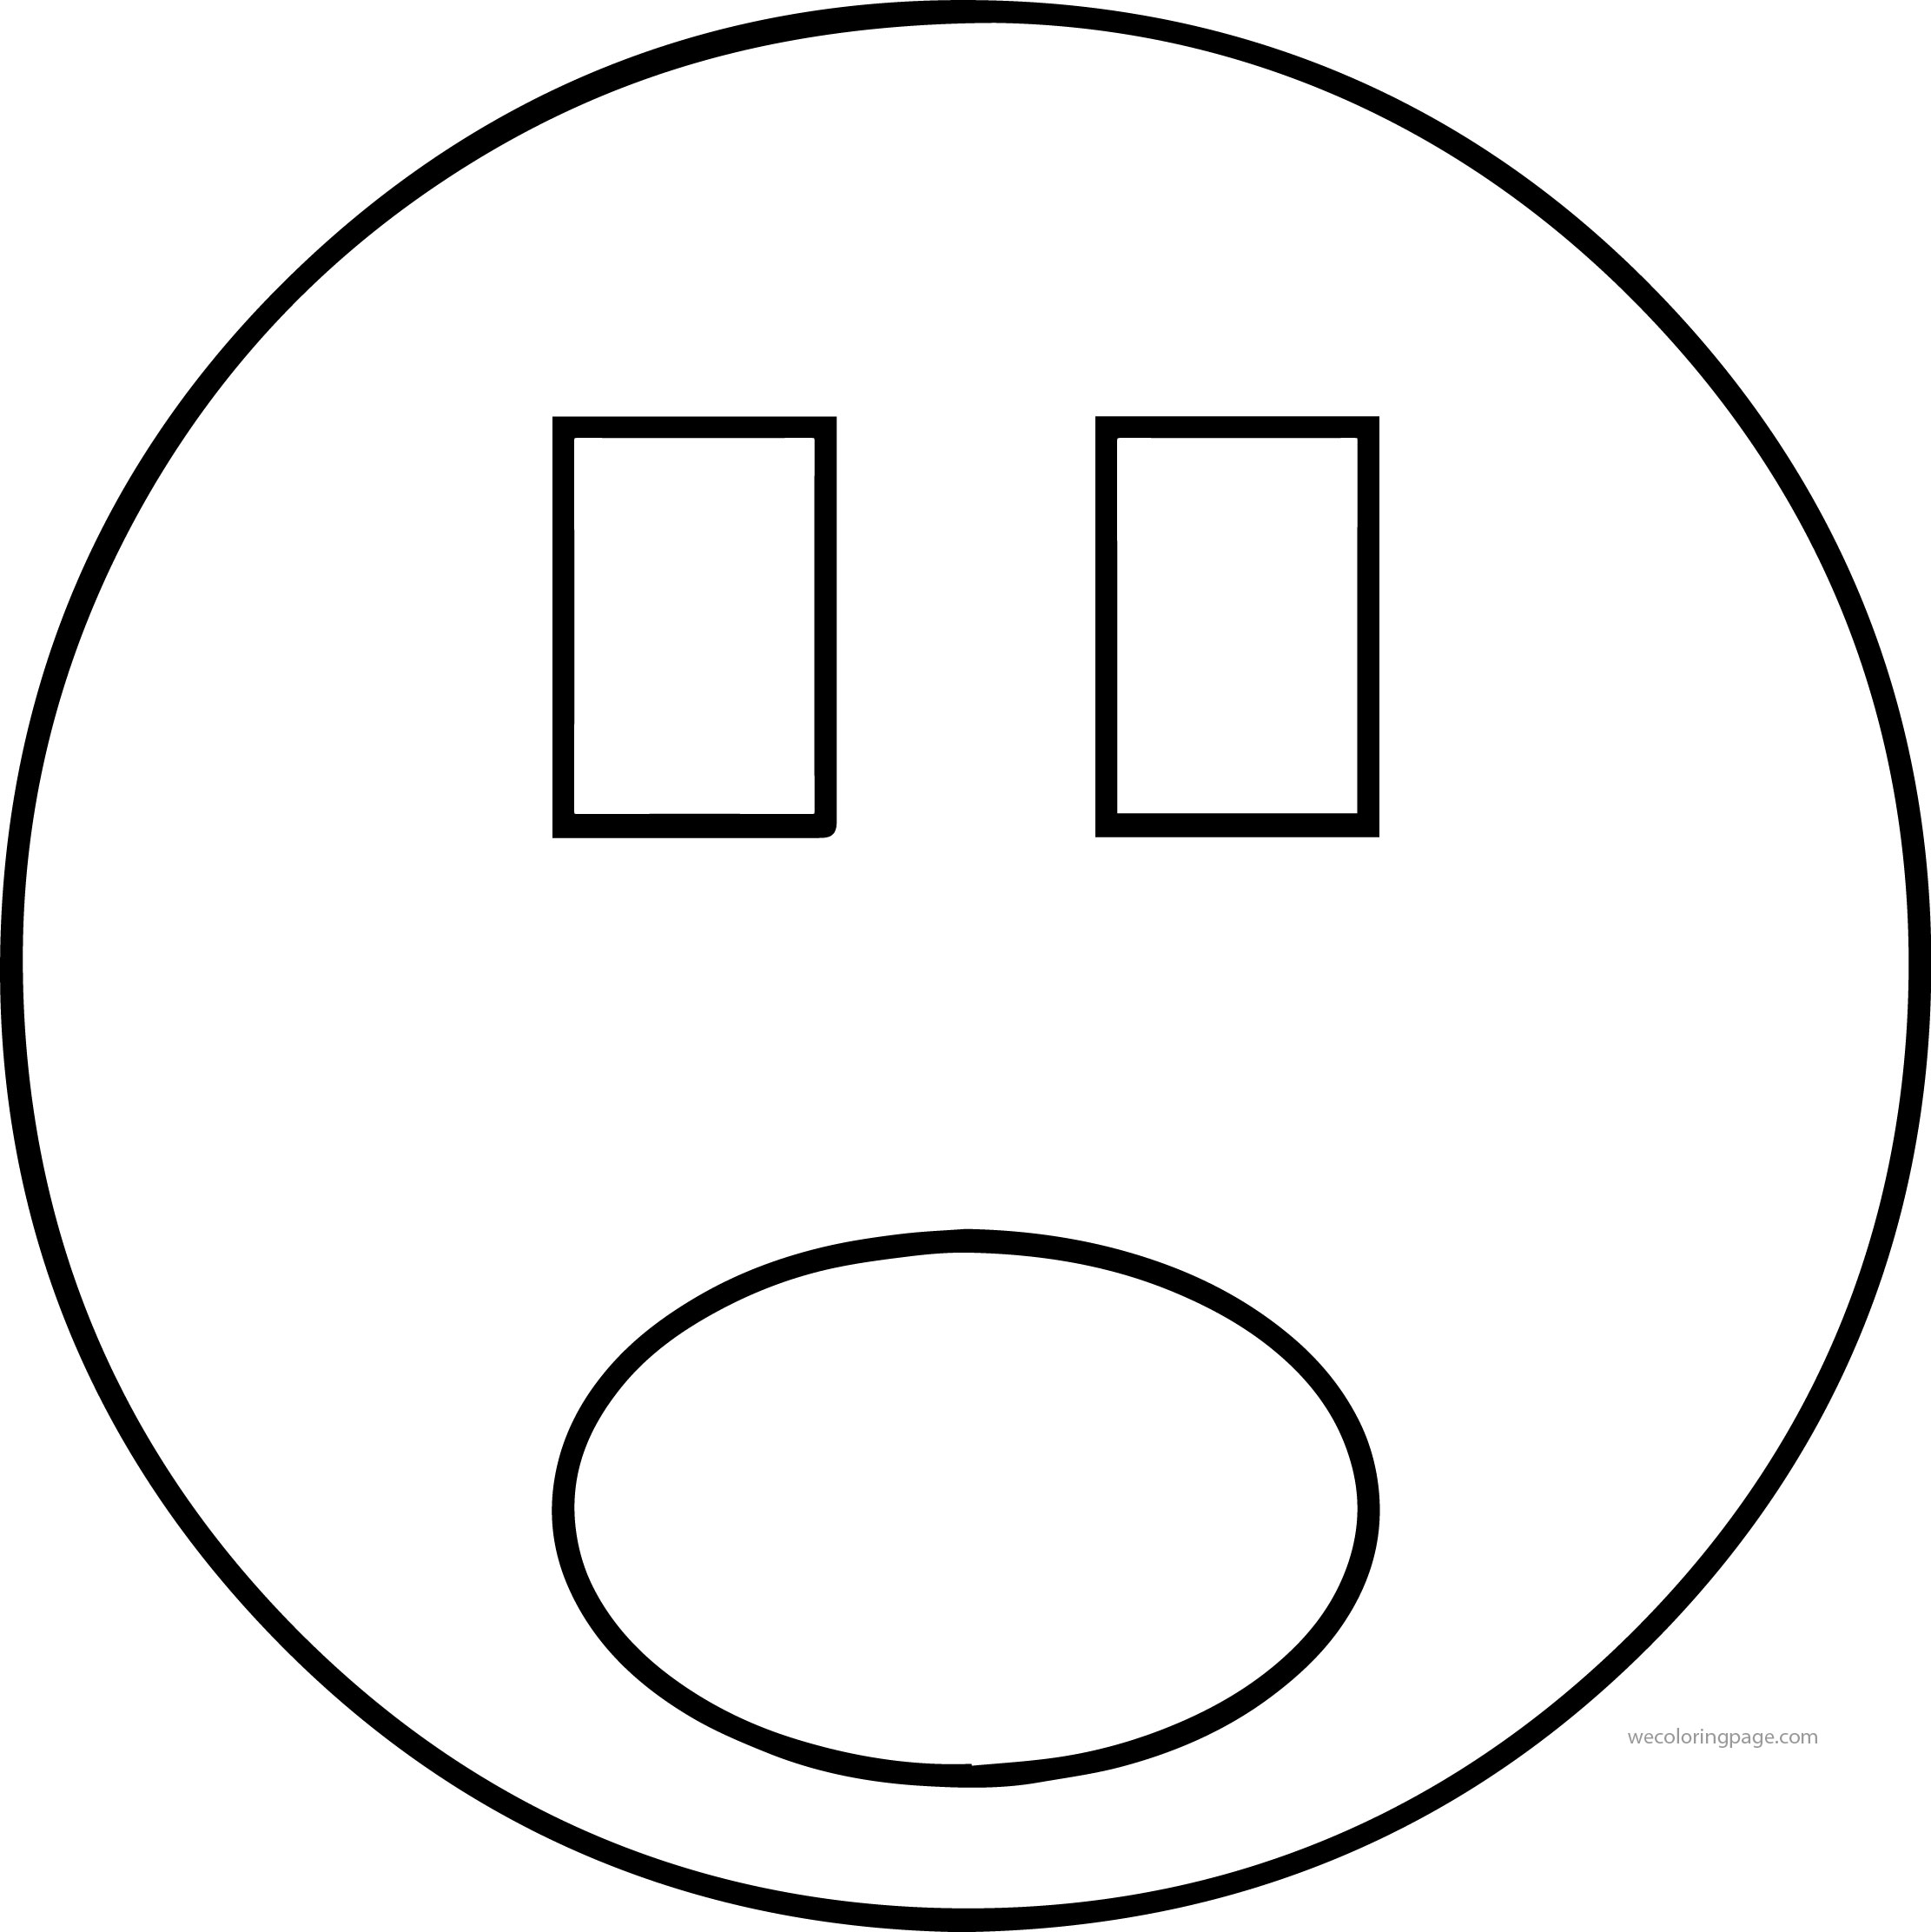 Face Rectangle Eye Free Shocked Smiley Face Illustration Coloring Page